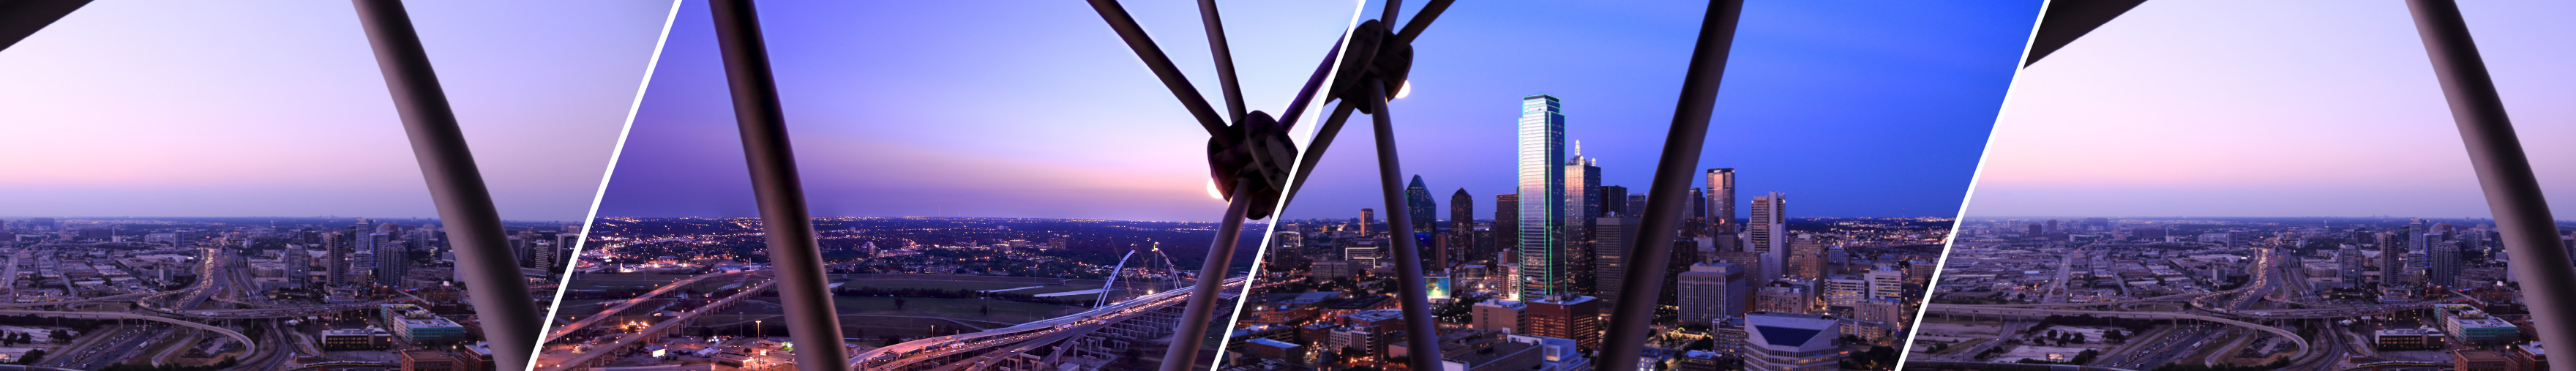 Private Events with 360 degree views of Dallas